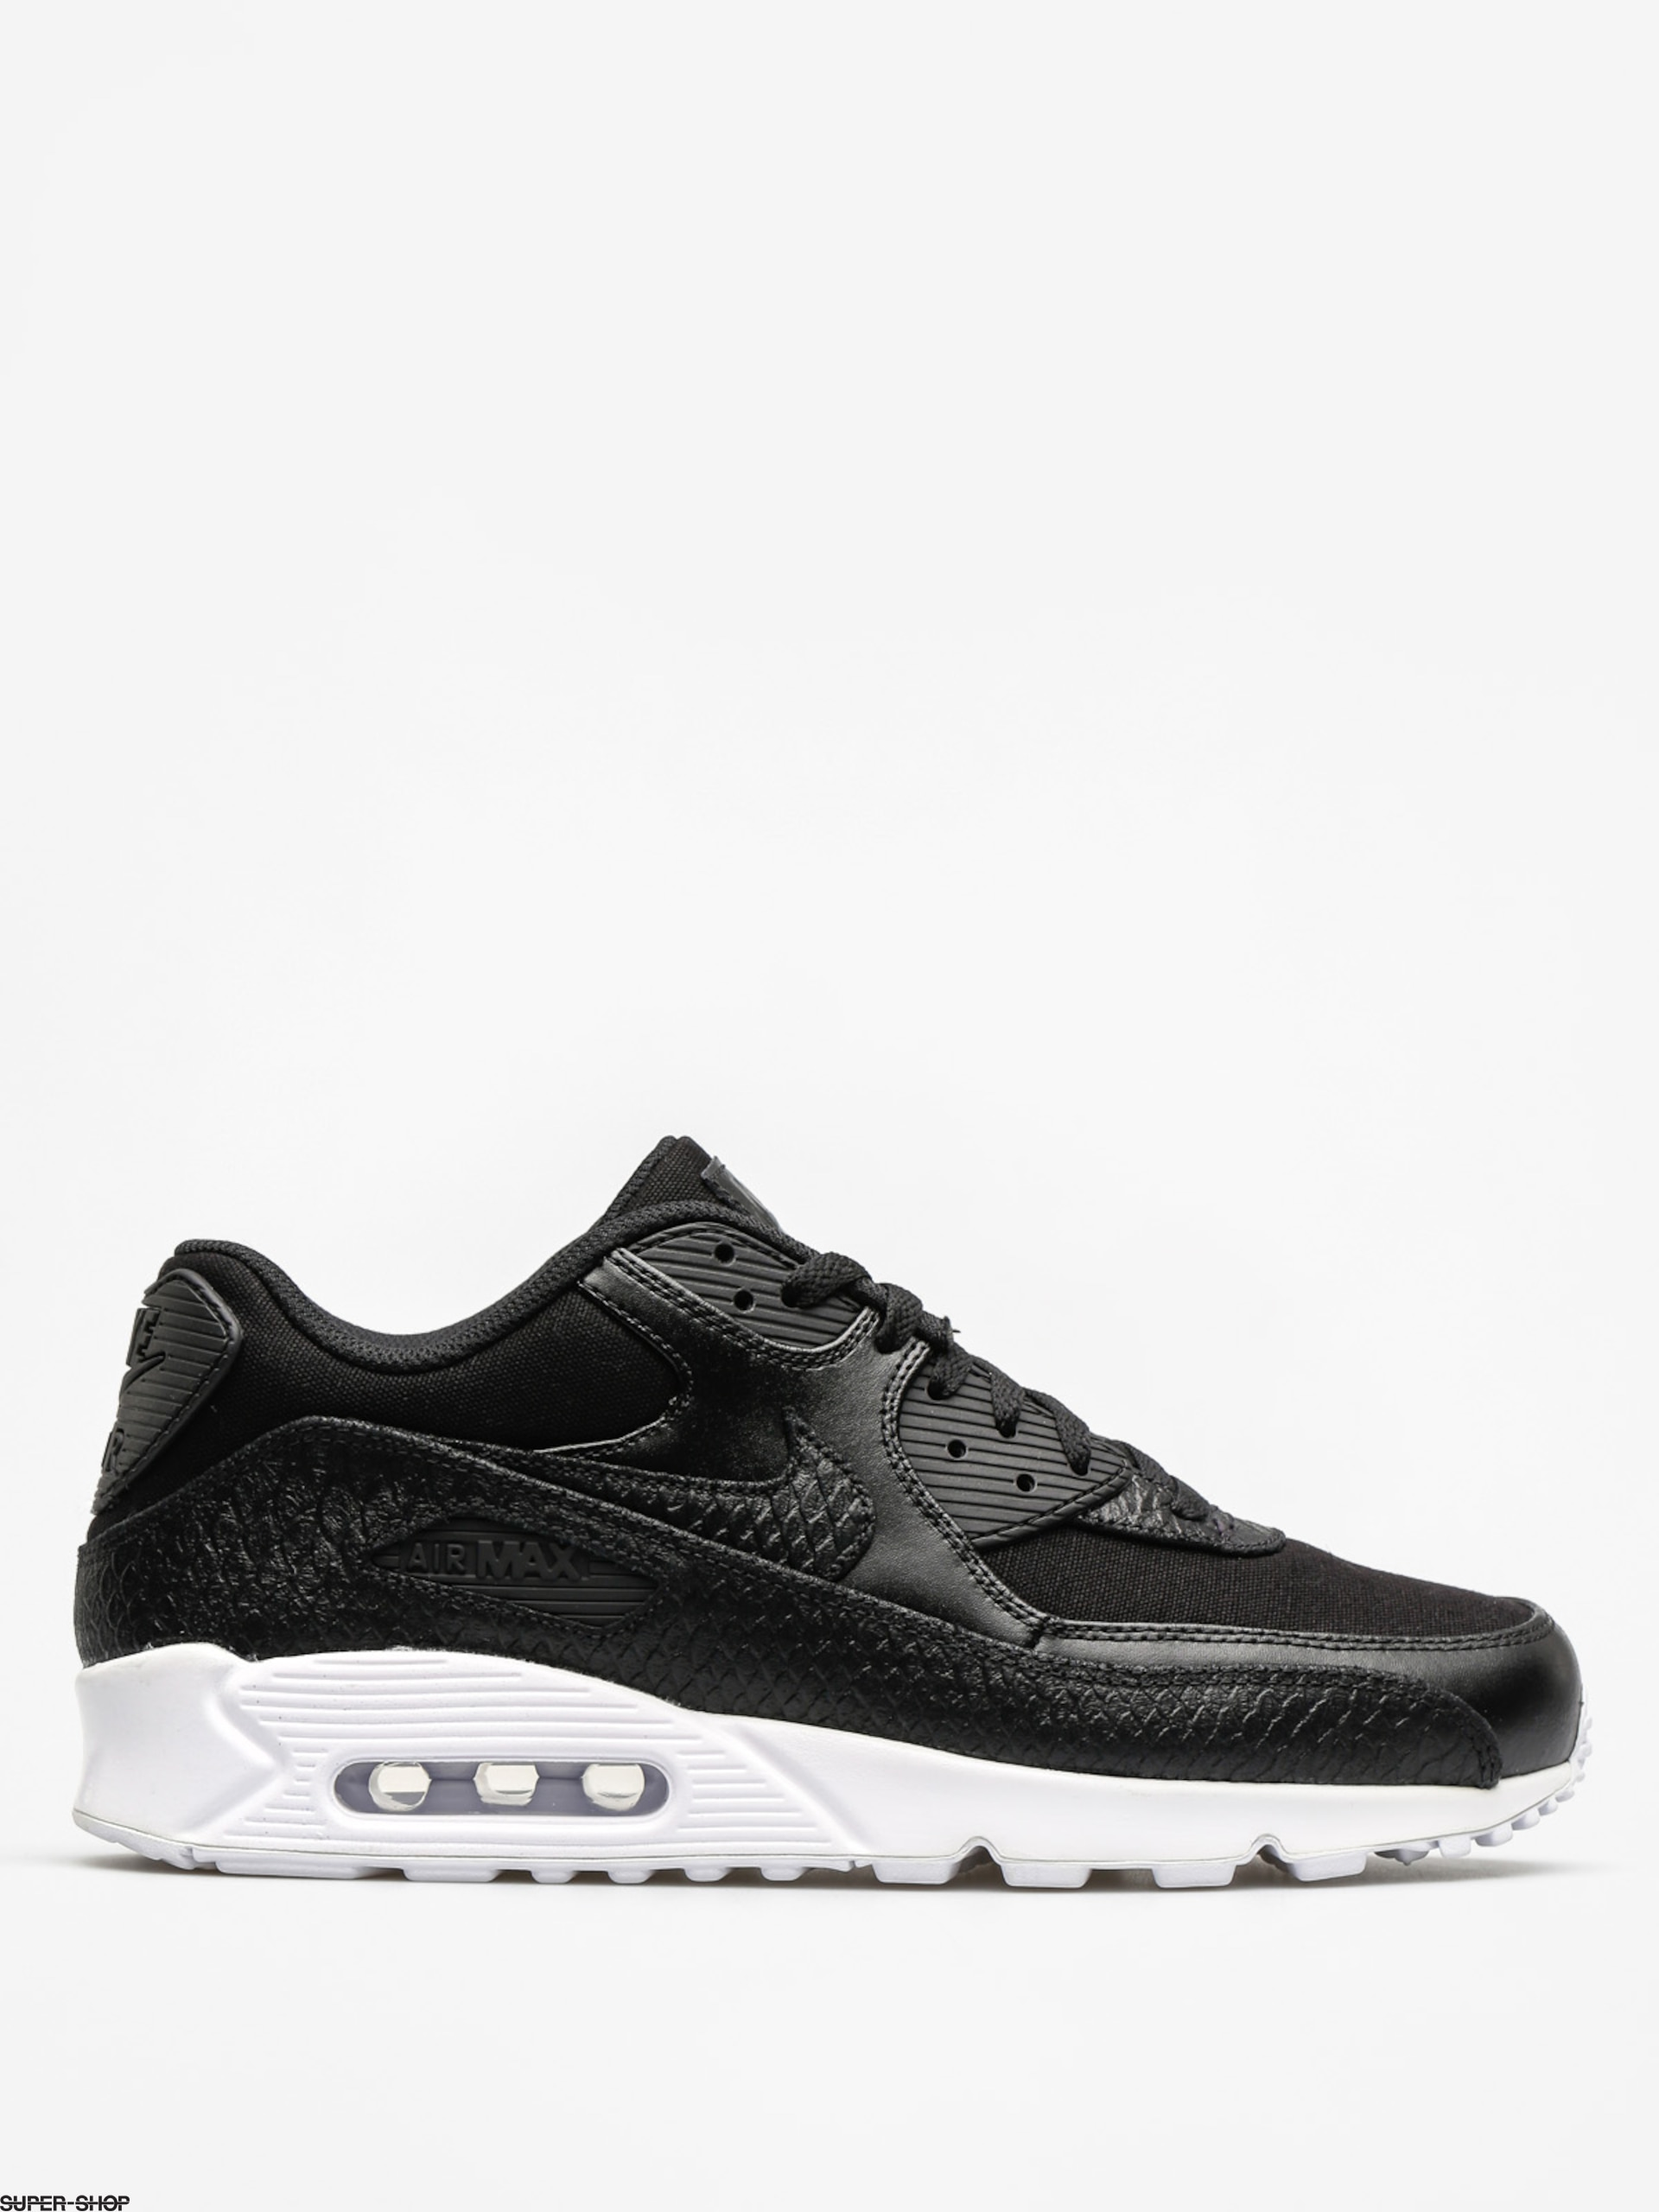 Nike Shoes Air Max 90 (Premium black/black white)